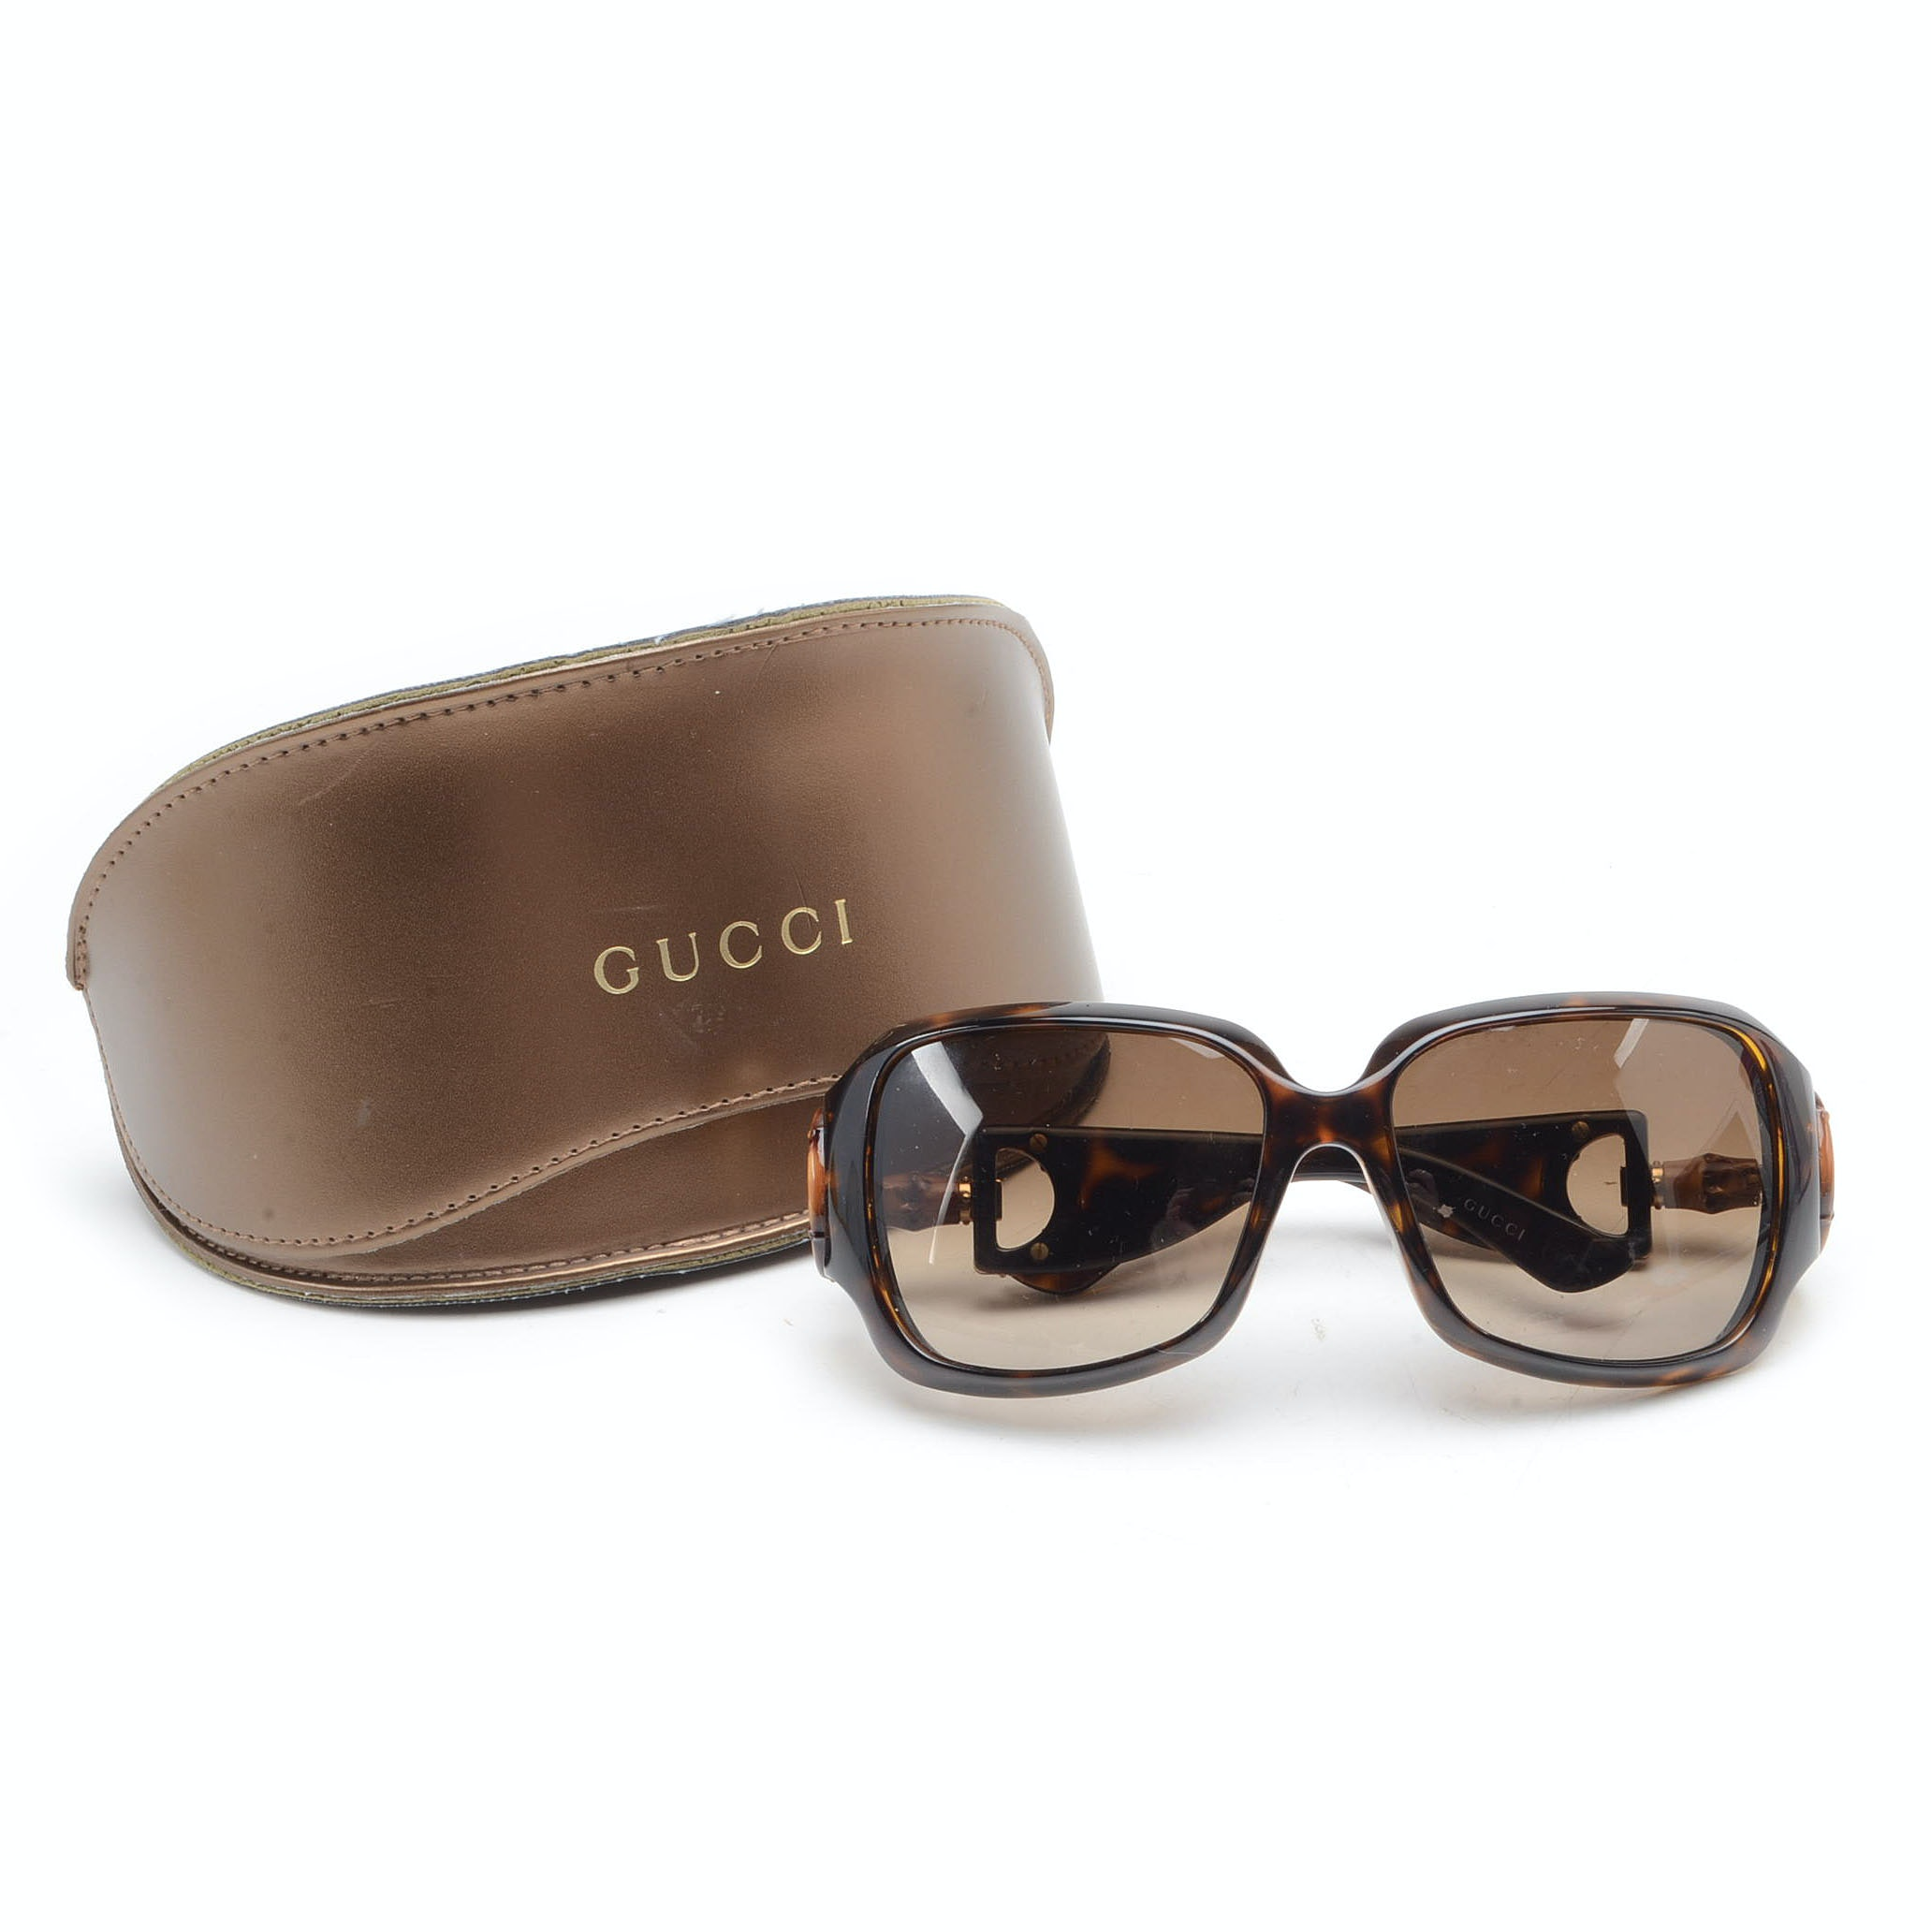 Gucci Tortoiseshell Patterned Sunglasses